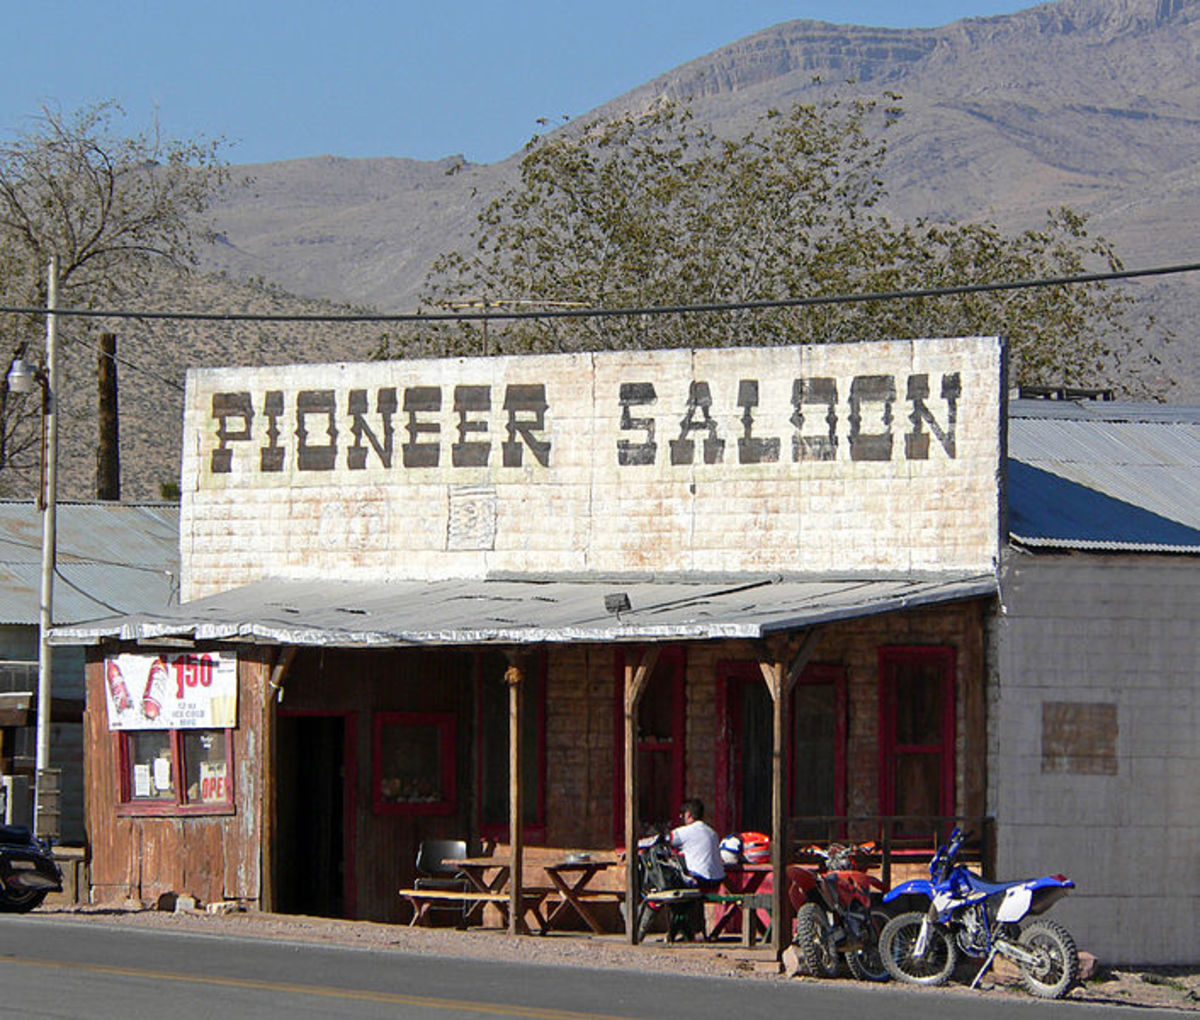 The Old Pioneer Saloon, built in 1913,  still standing and still operating today.